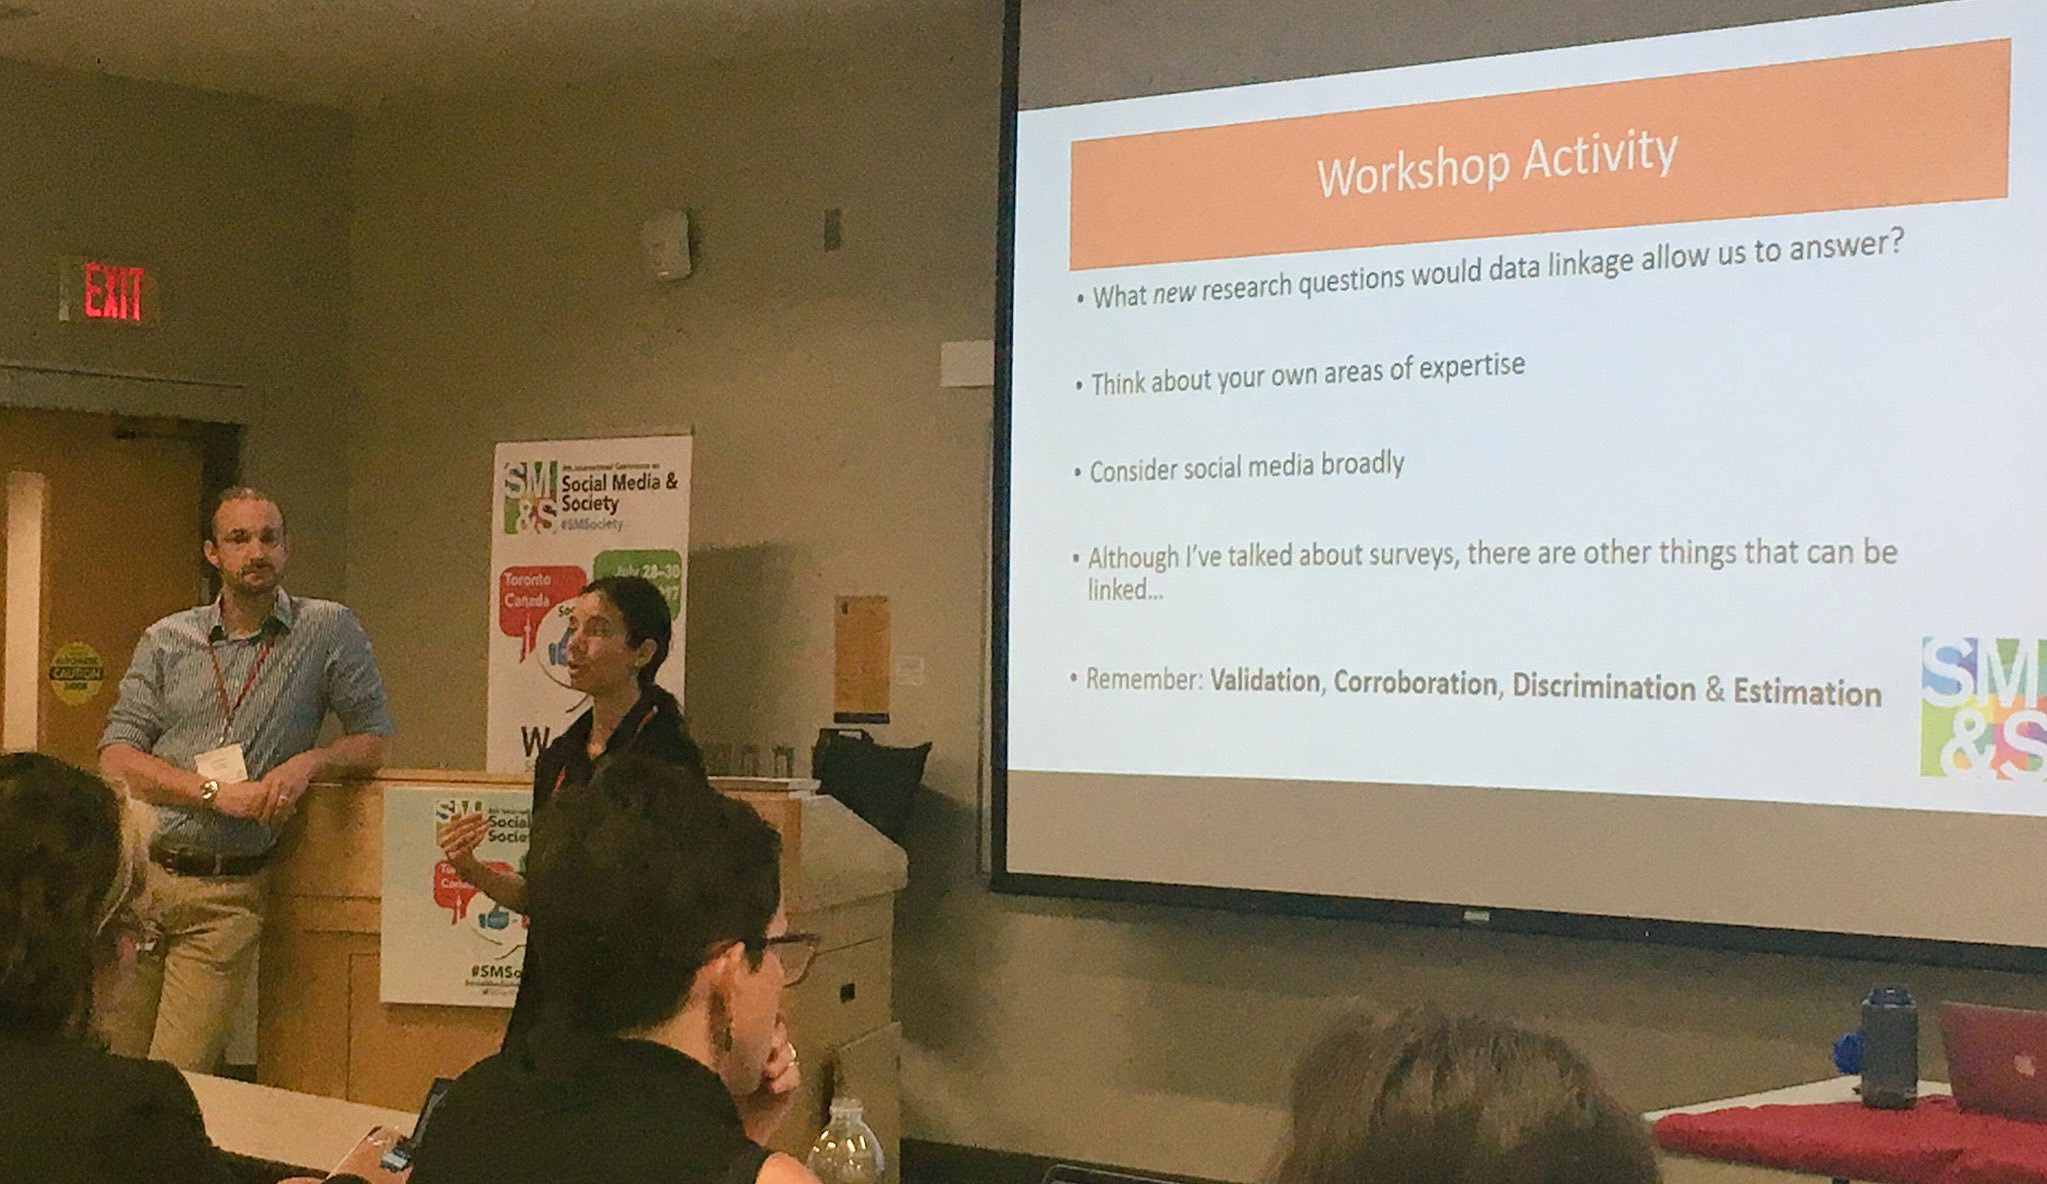 The features of SM platforms are the 'stage' @anabelquanhaase #Goffman #SMSociety https://t.co/M8VdjIcHAe